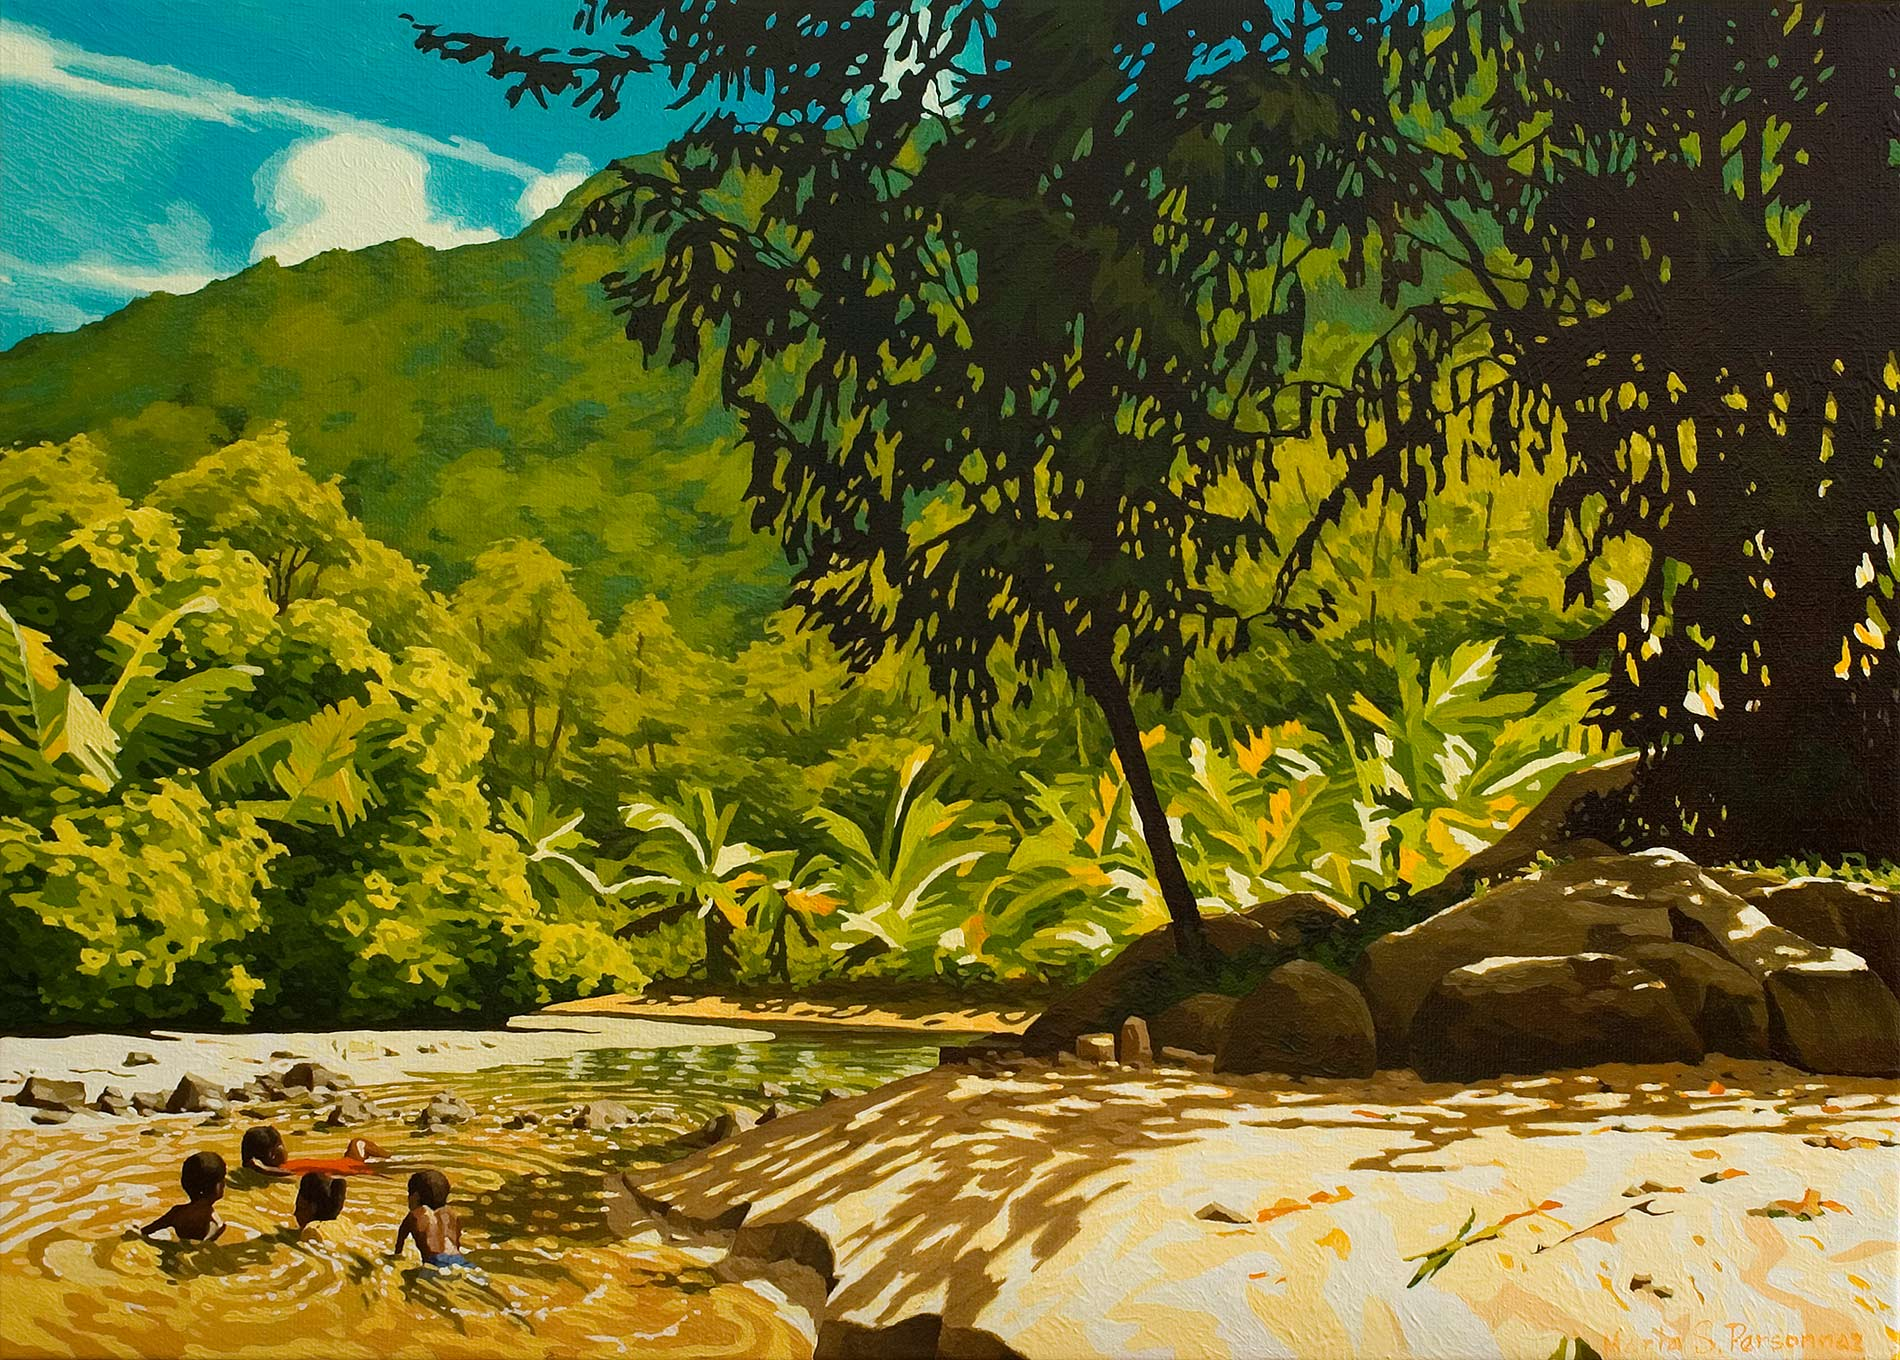 Landscape with bathers, Seychelles